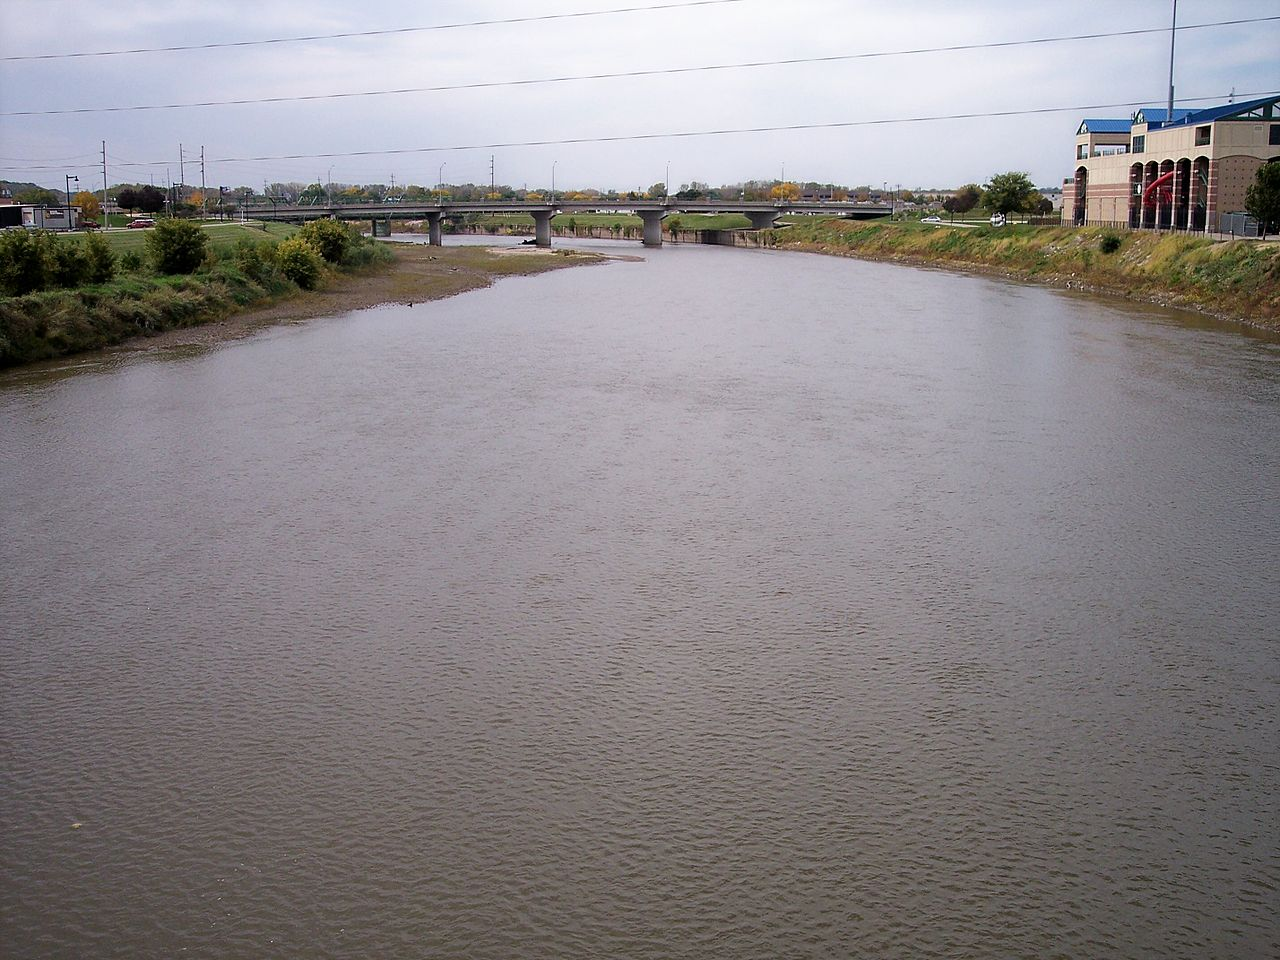 photo: The Raccoon River inDes Moines, Iowa, as viewed upstream from a pedestrian bridge at its mouth at the Des Moines River. Photo by Tim Kiser.